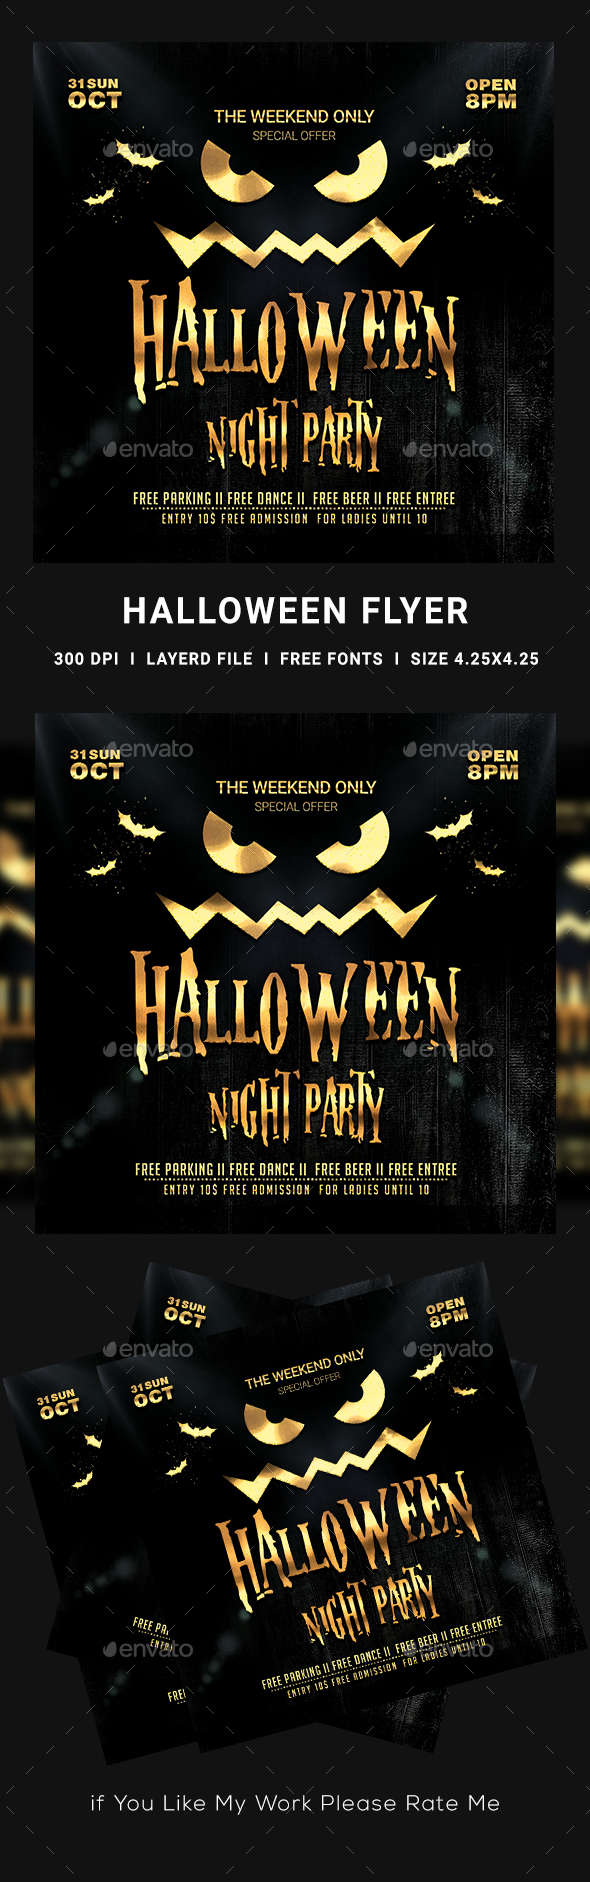 Halloween Party Flyer - Clubs & Parties Events